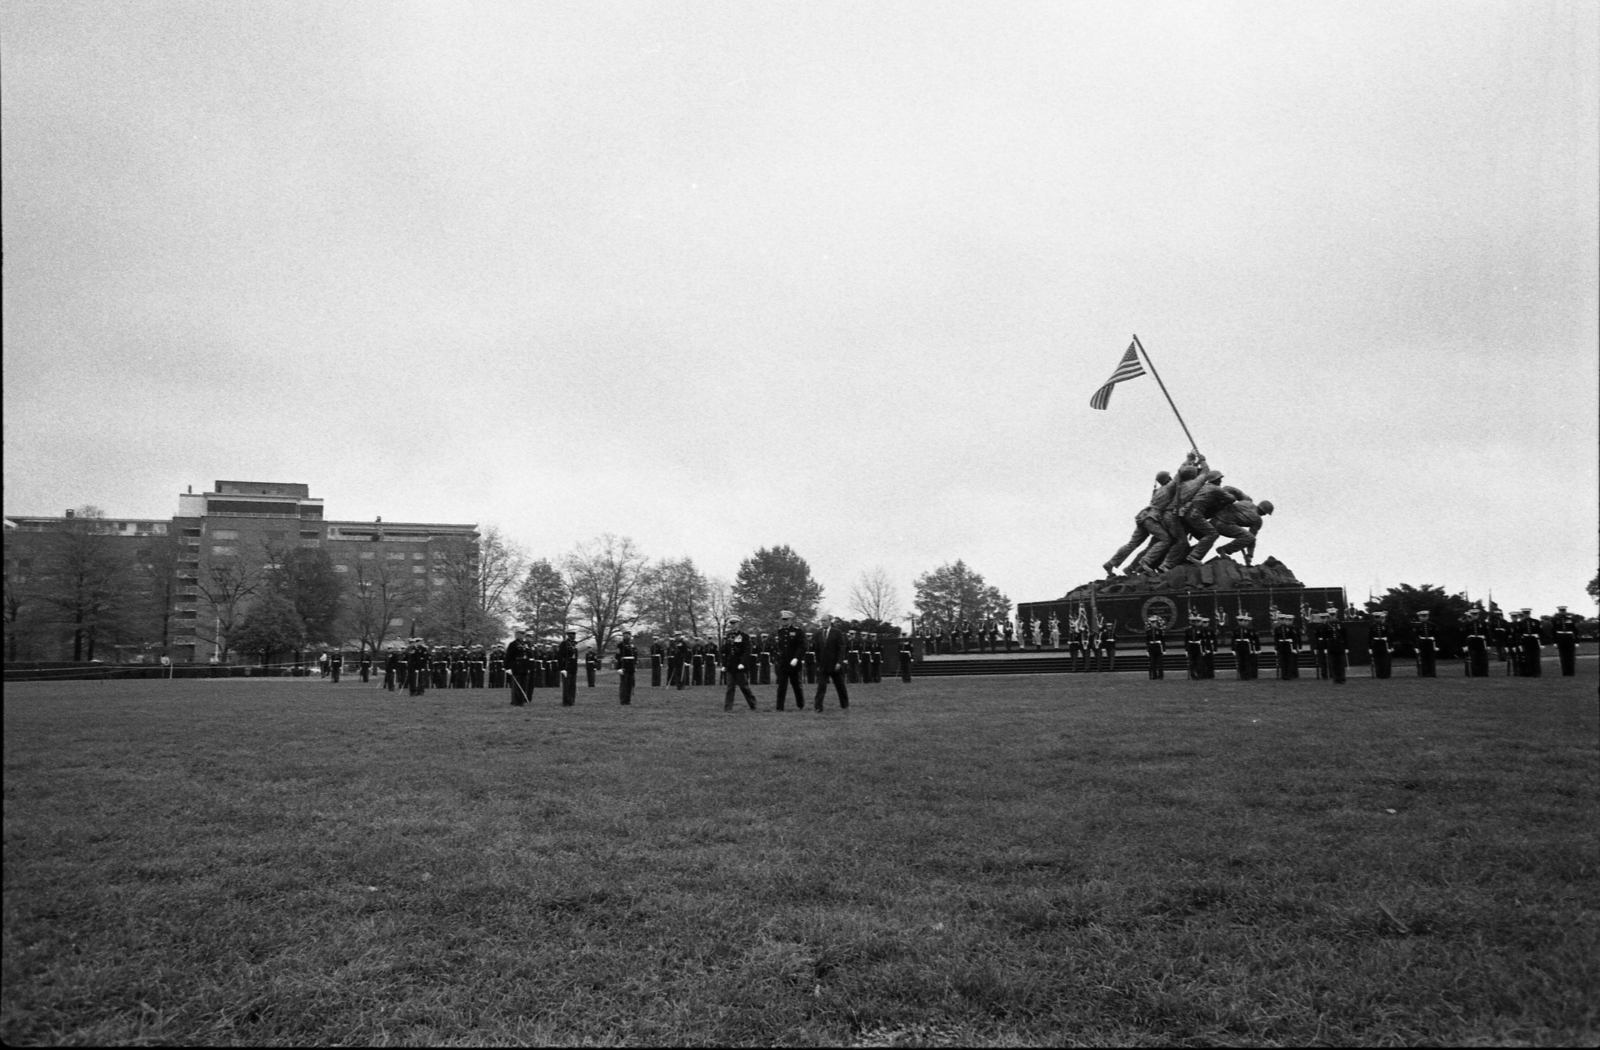 Color Guard and Marines in Parade Formation on the Parade Grounds in Front of the Iwo Jima Memorial at the Commemoration of 200th Birthday of the United States Marine Corps